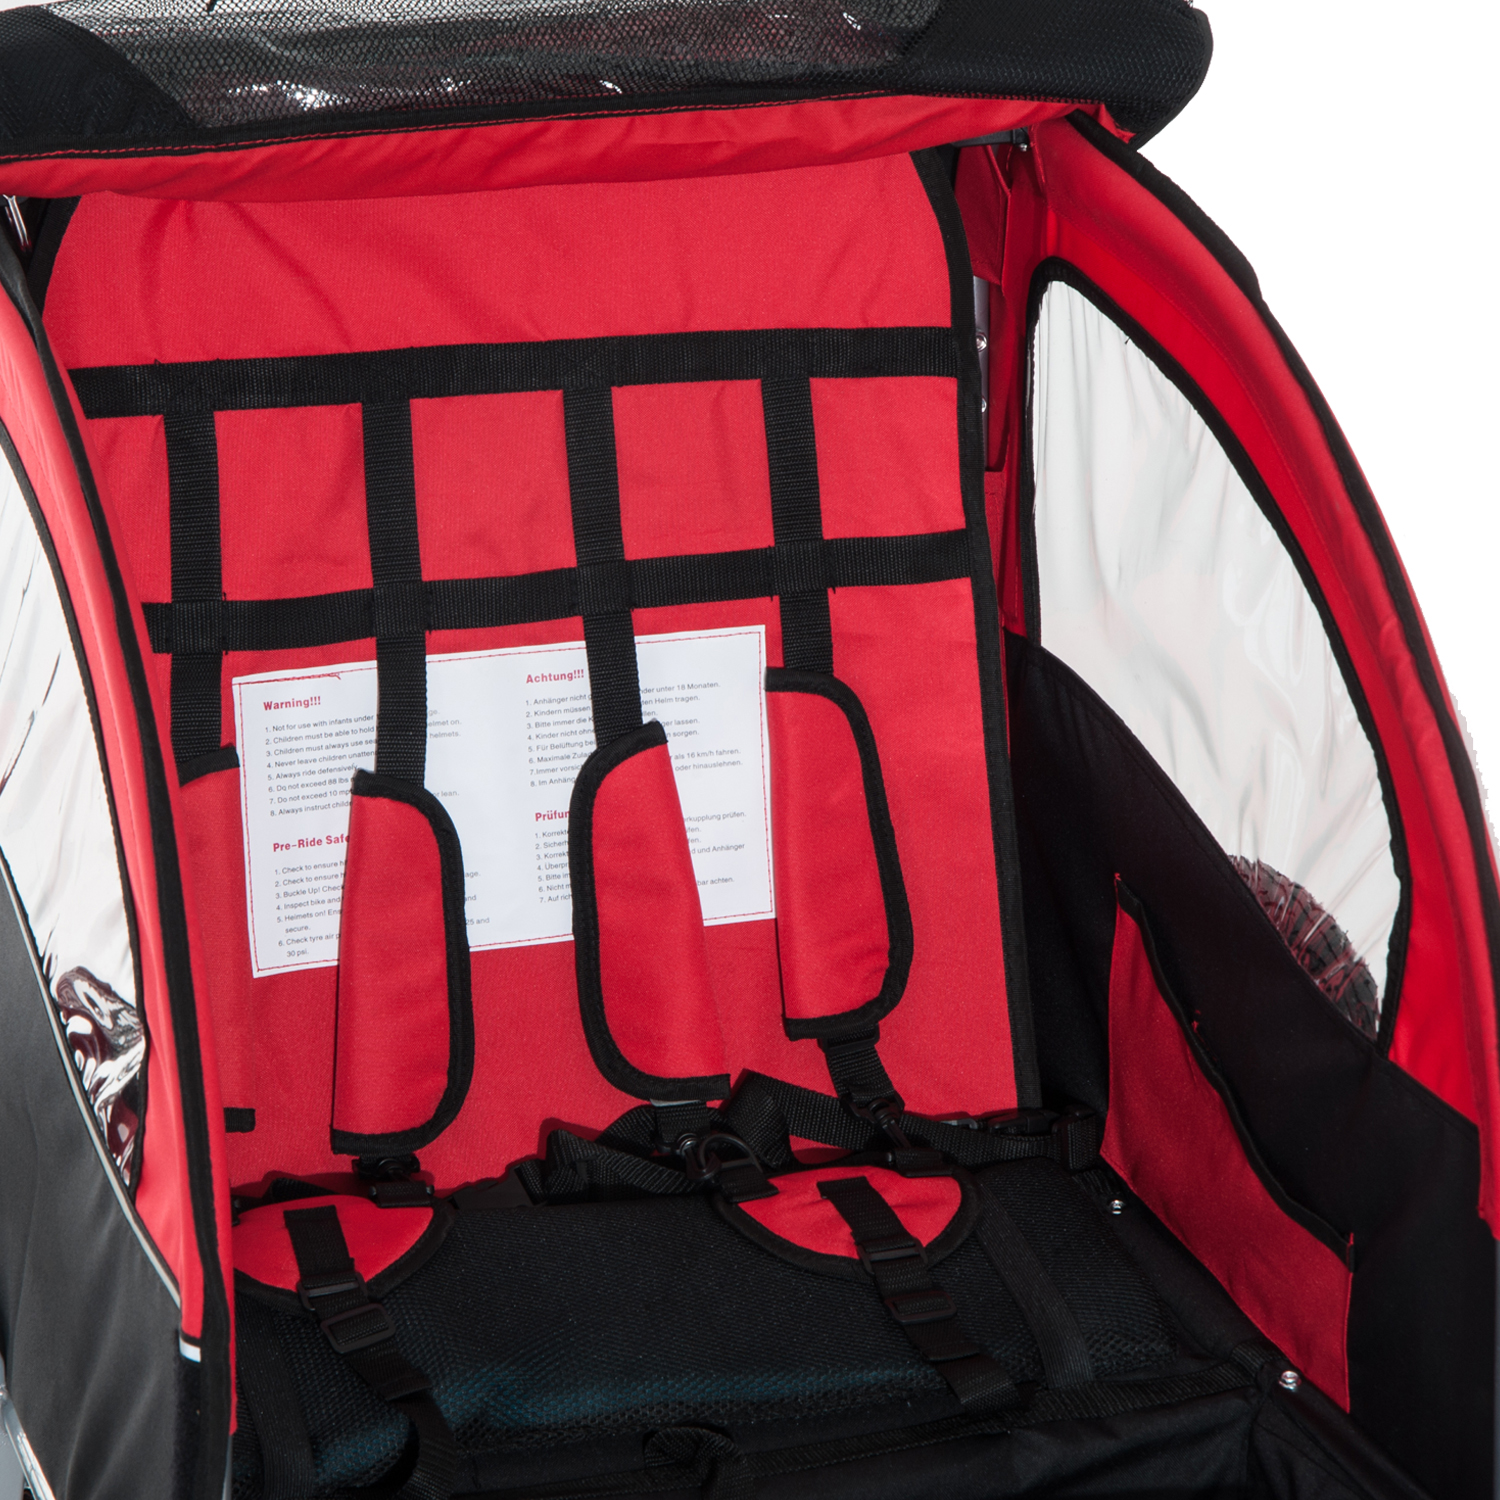 2-Seater-Child-Bike-Trailer-Kids-Carrier-Safety-Harness-Baby-Stroller-Jogger thumbnail 13